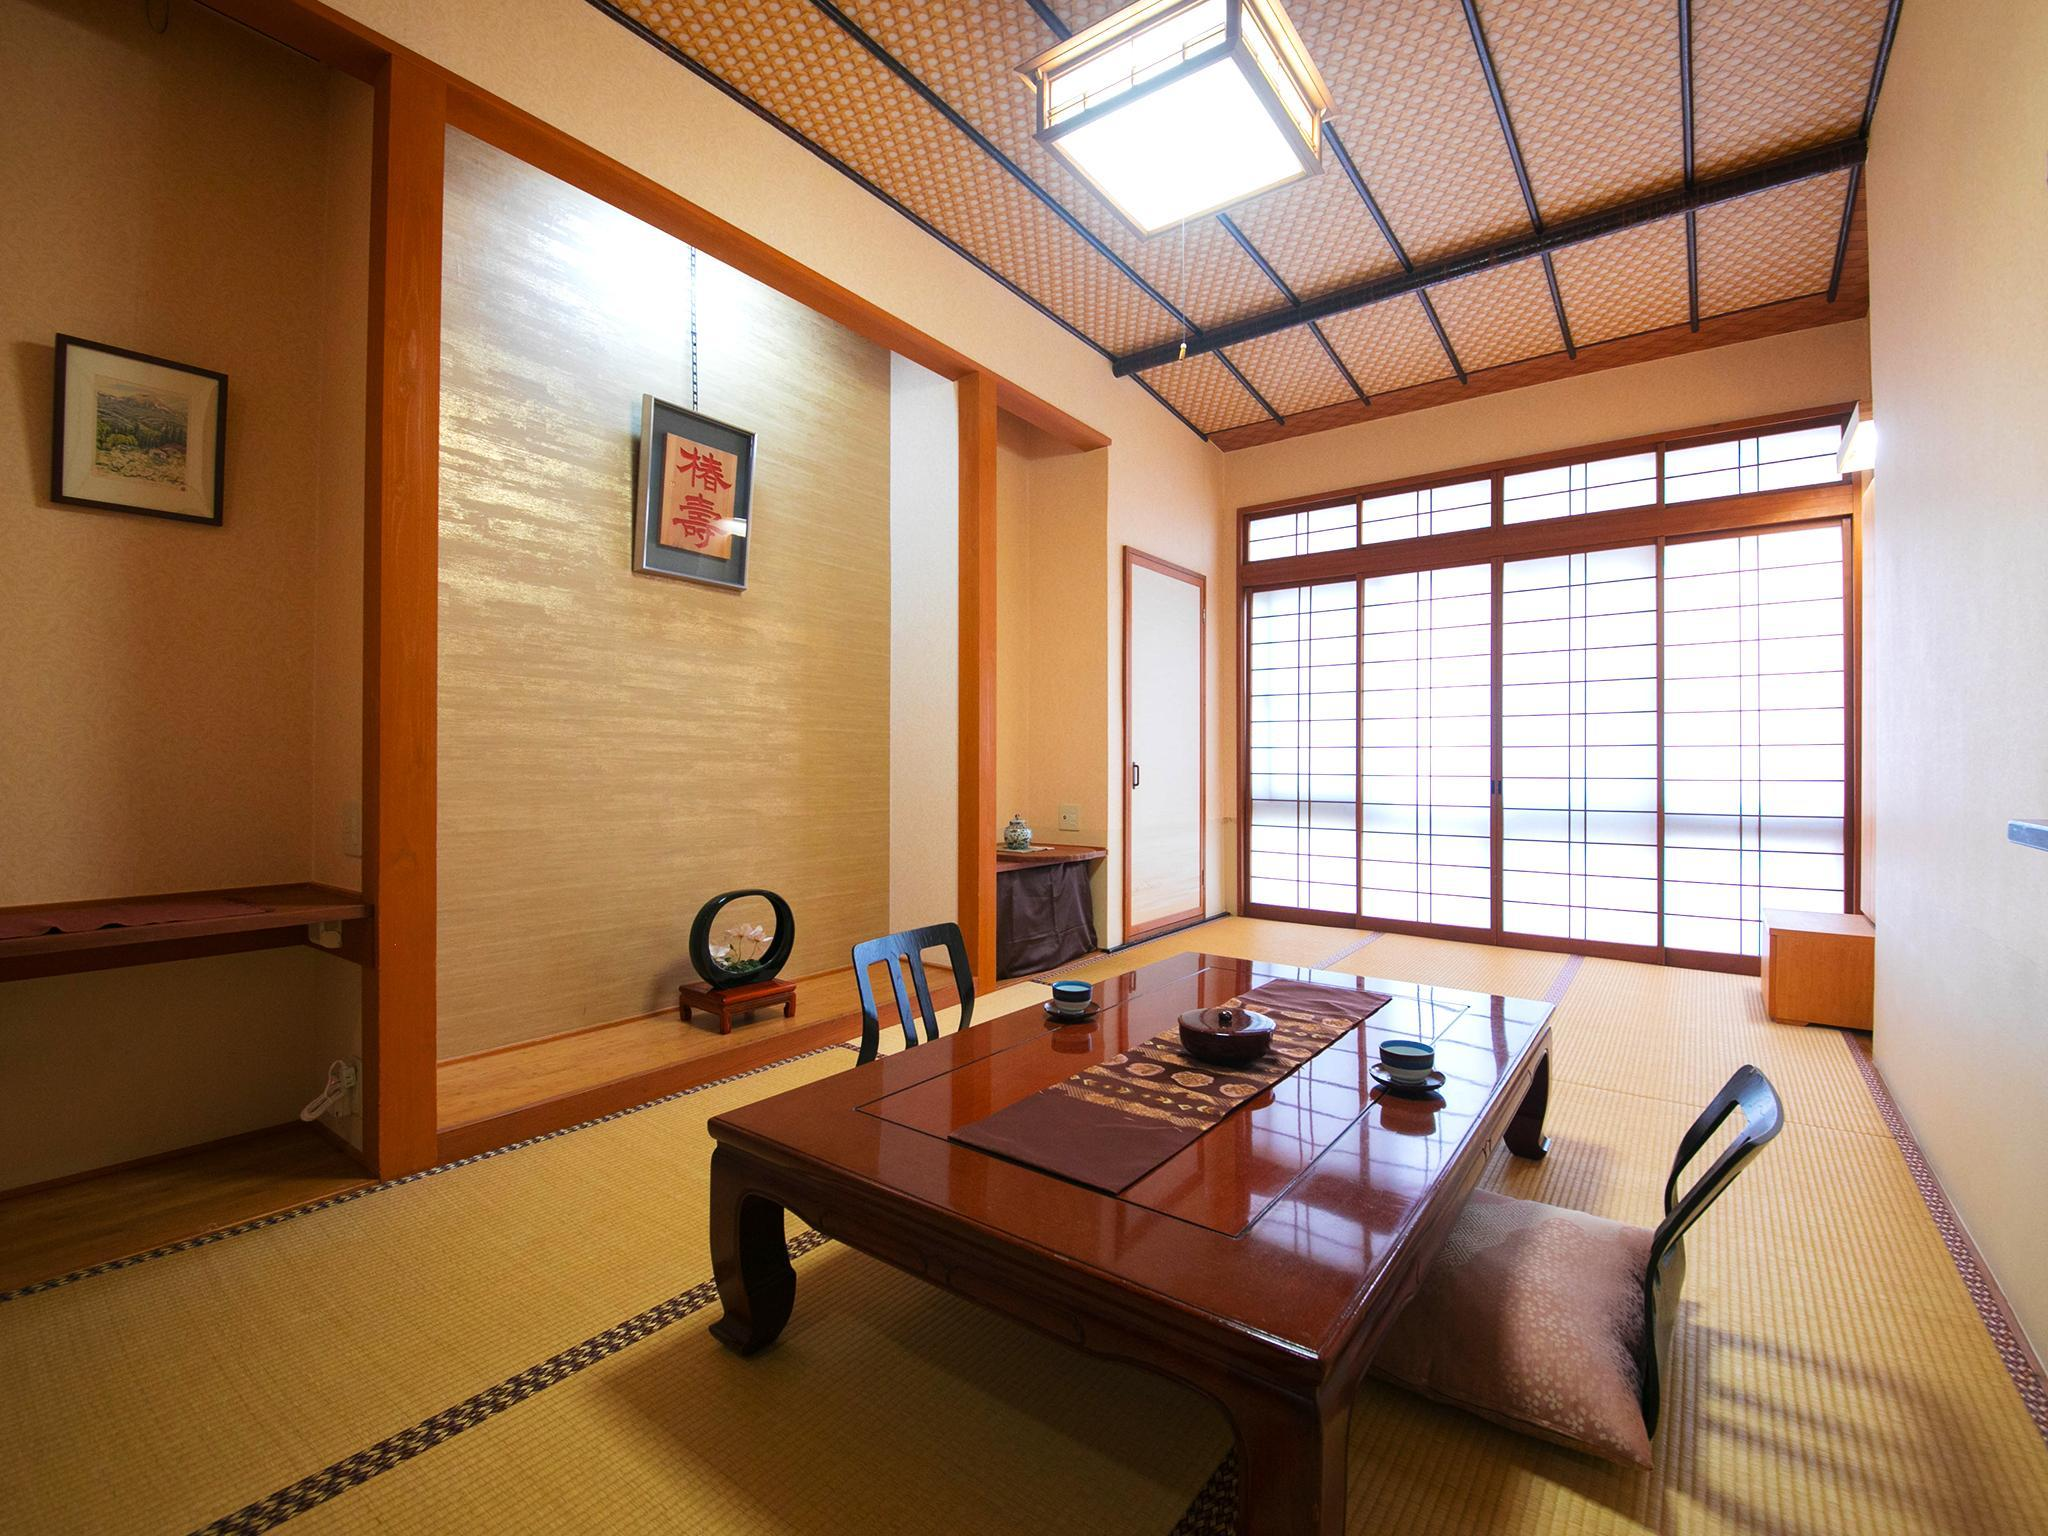 Japanese Style Room with 8 Tatami